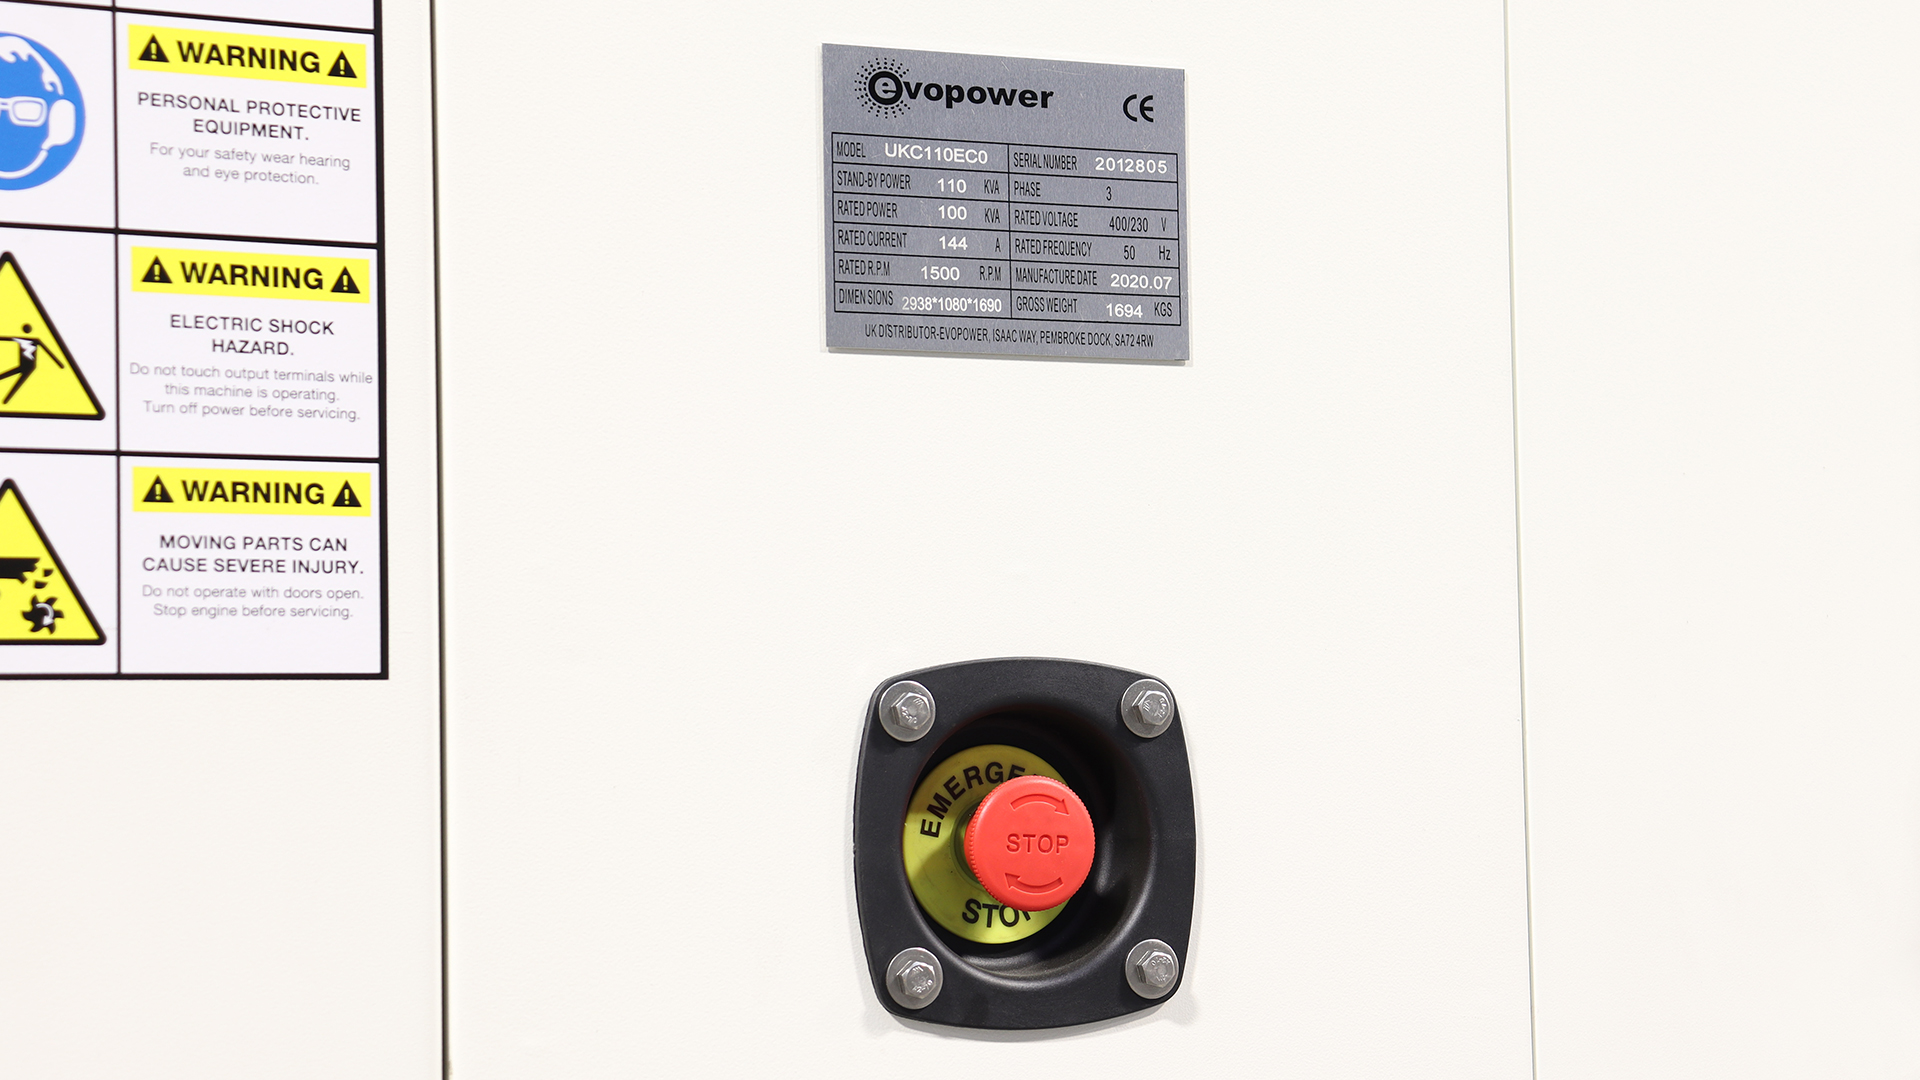 Emergency stop button on the back of the generator